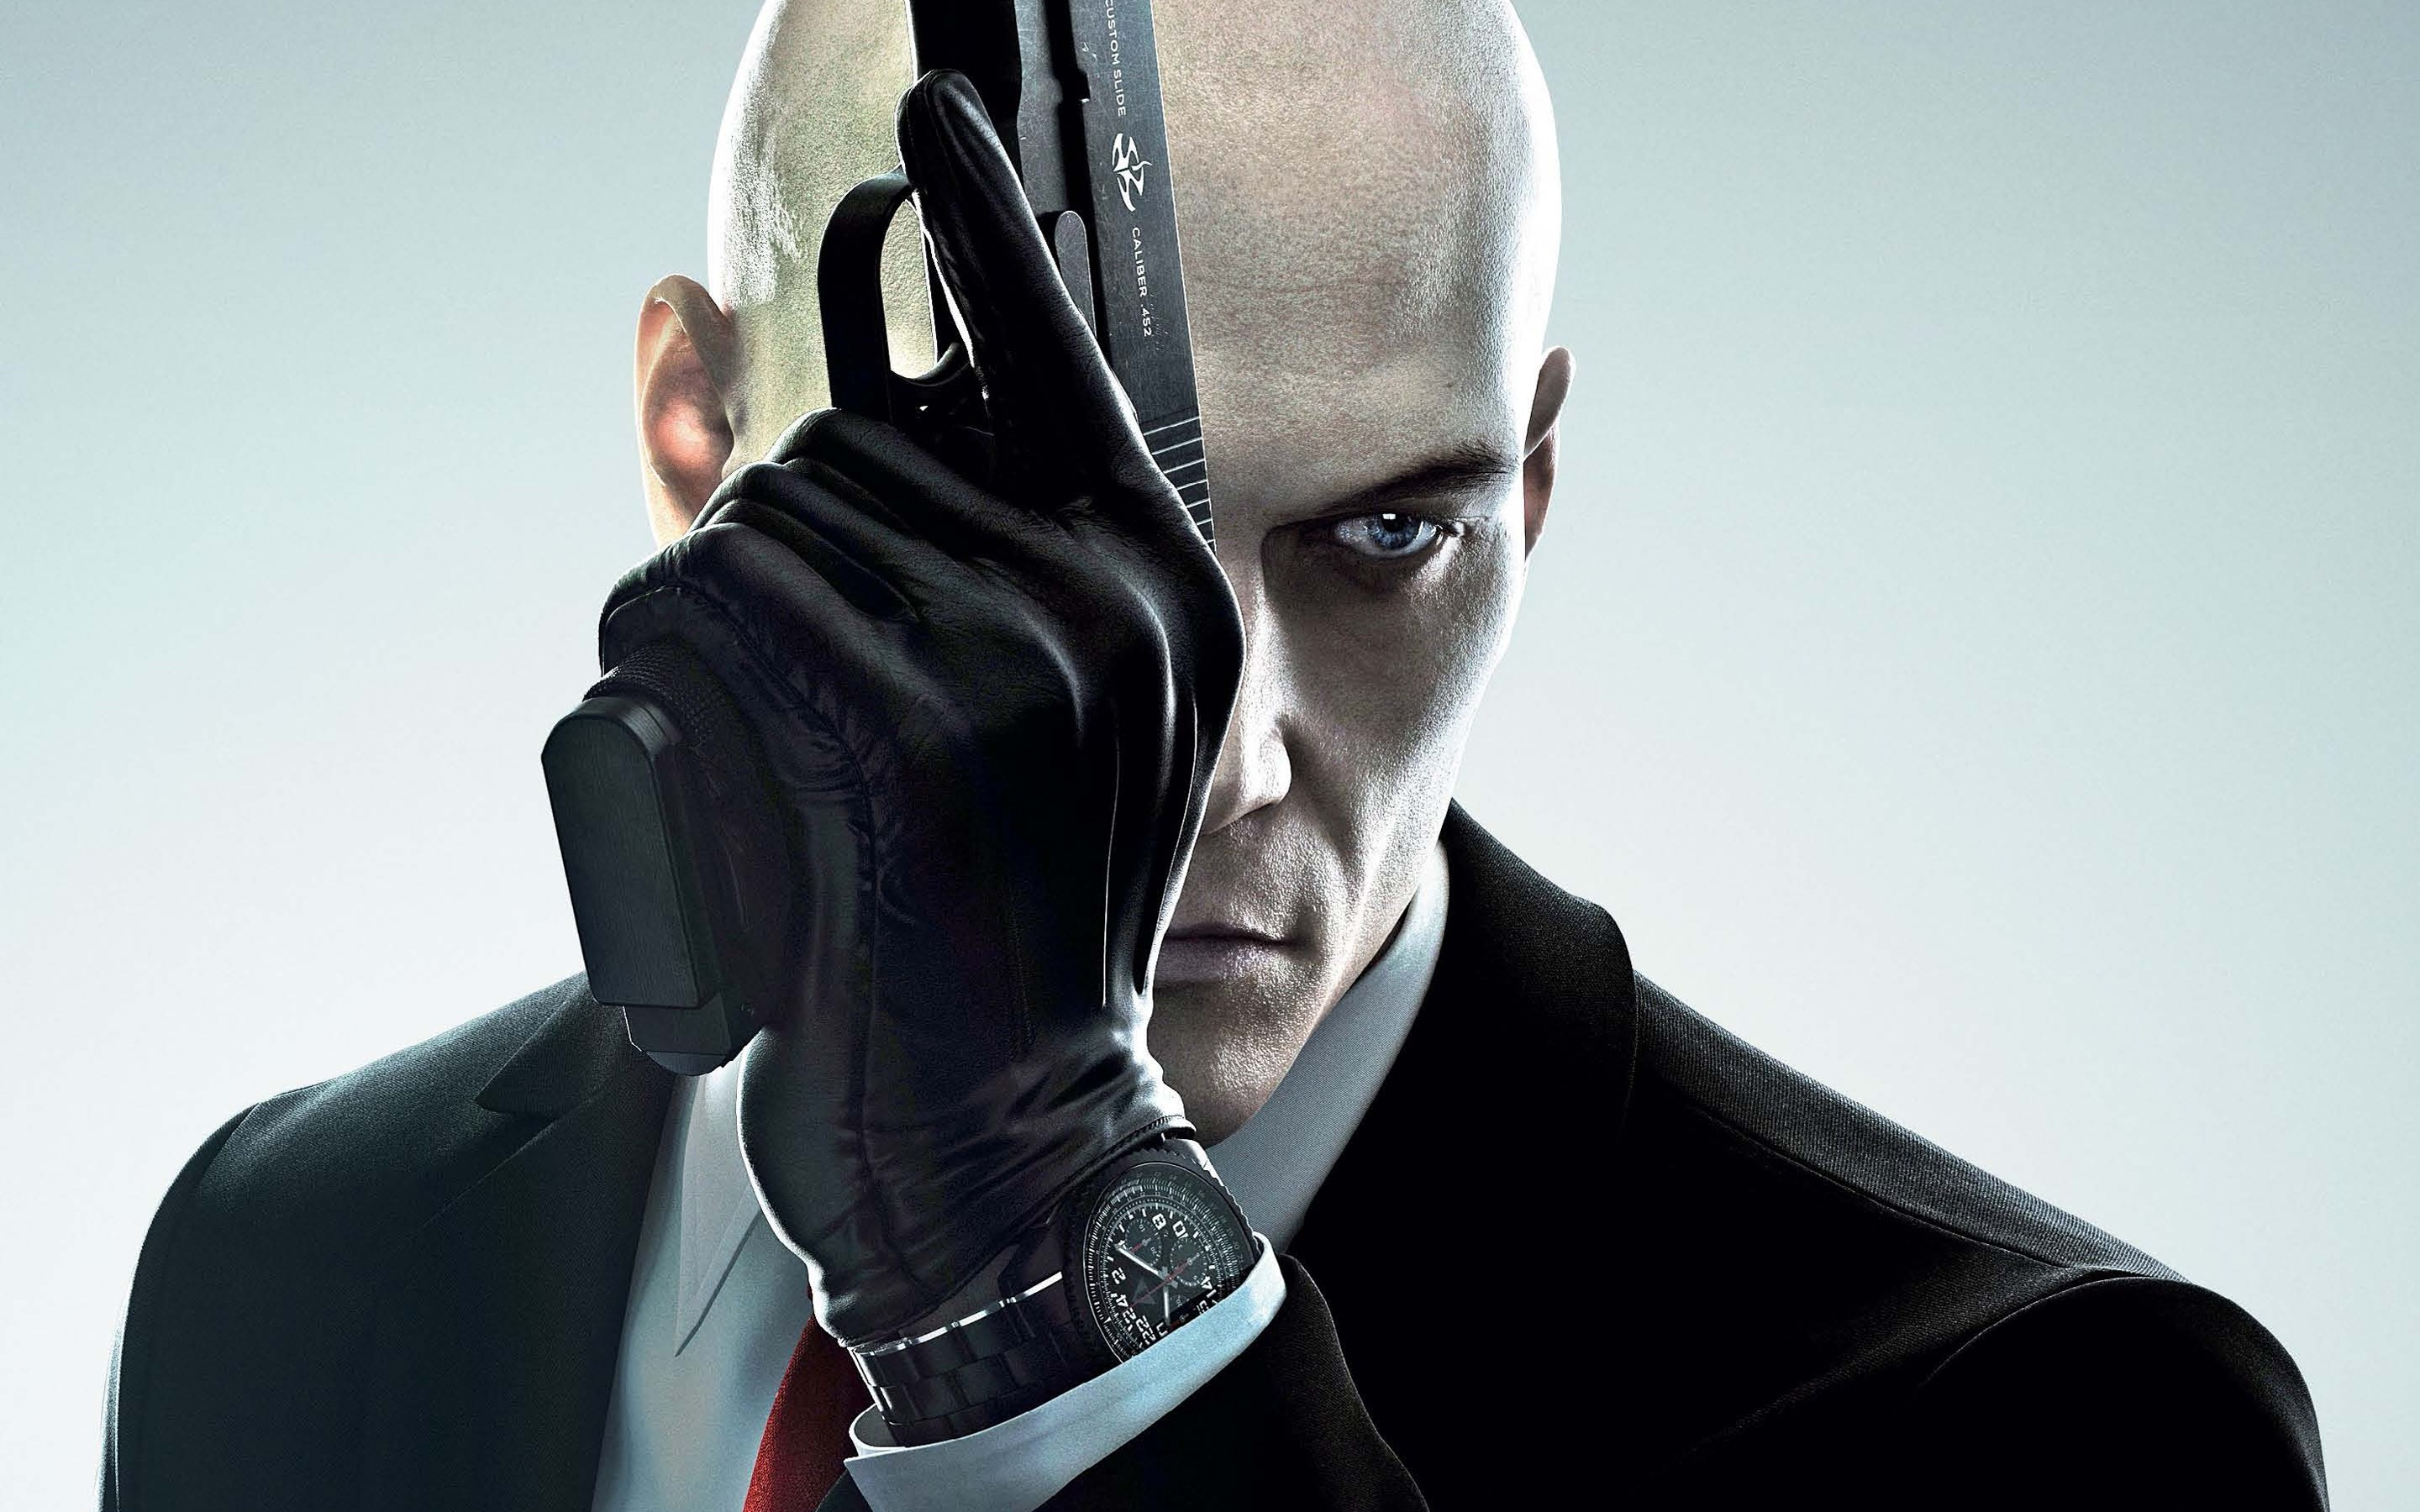 Hitman 2016 hd wallpaper background image 2880x1800 id 720264 wallpaper abyss - Agent 47 wallpaper ...